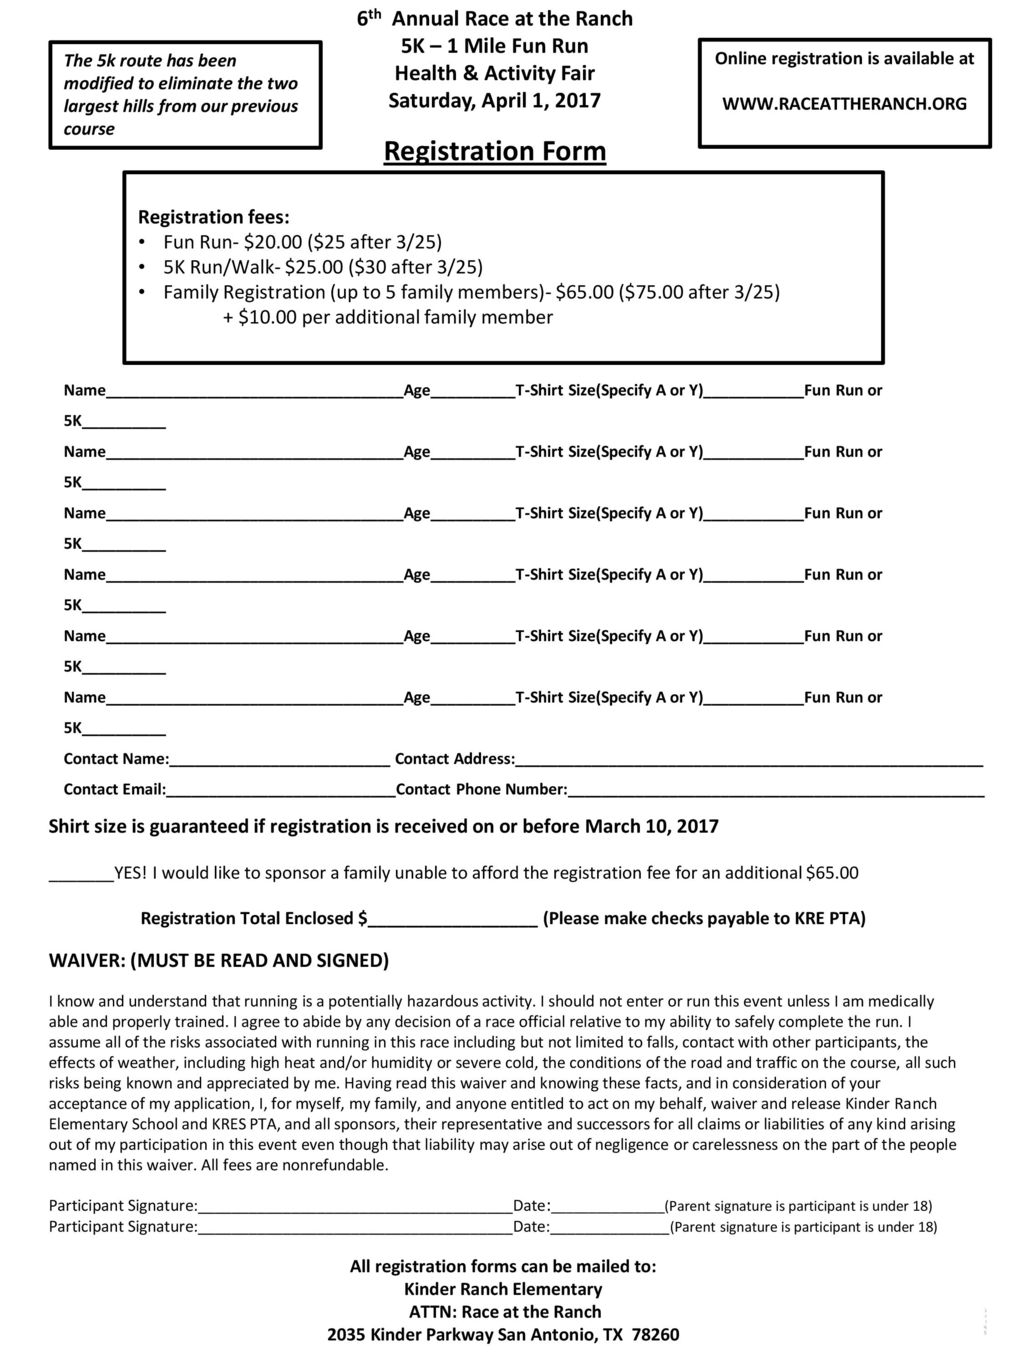 Registration Form 6th Annual Race at the Ranch 5K – 1 Mile